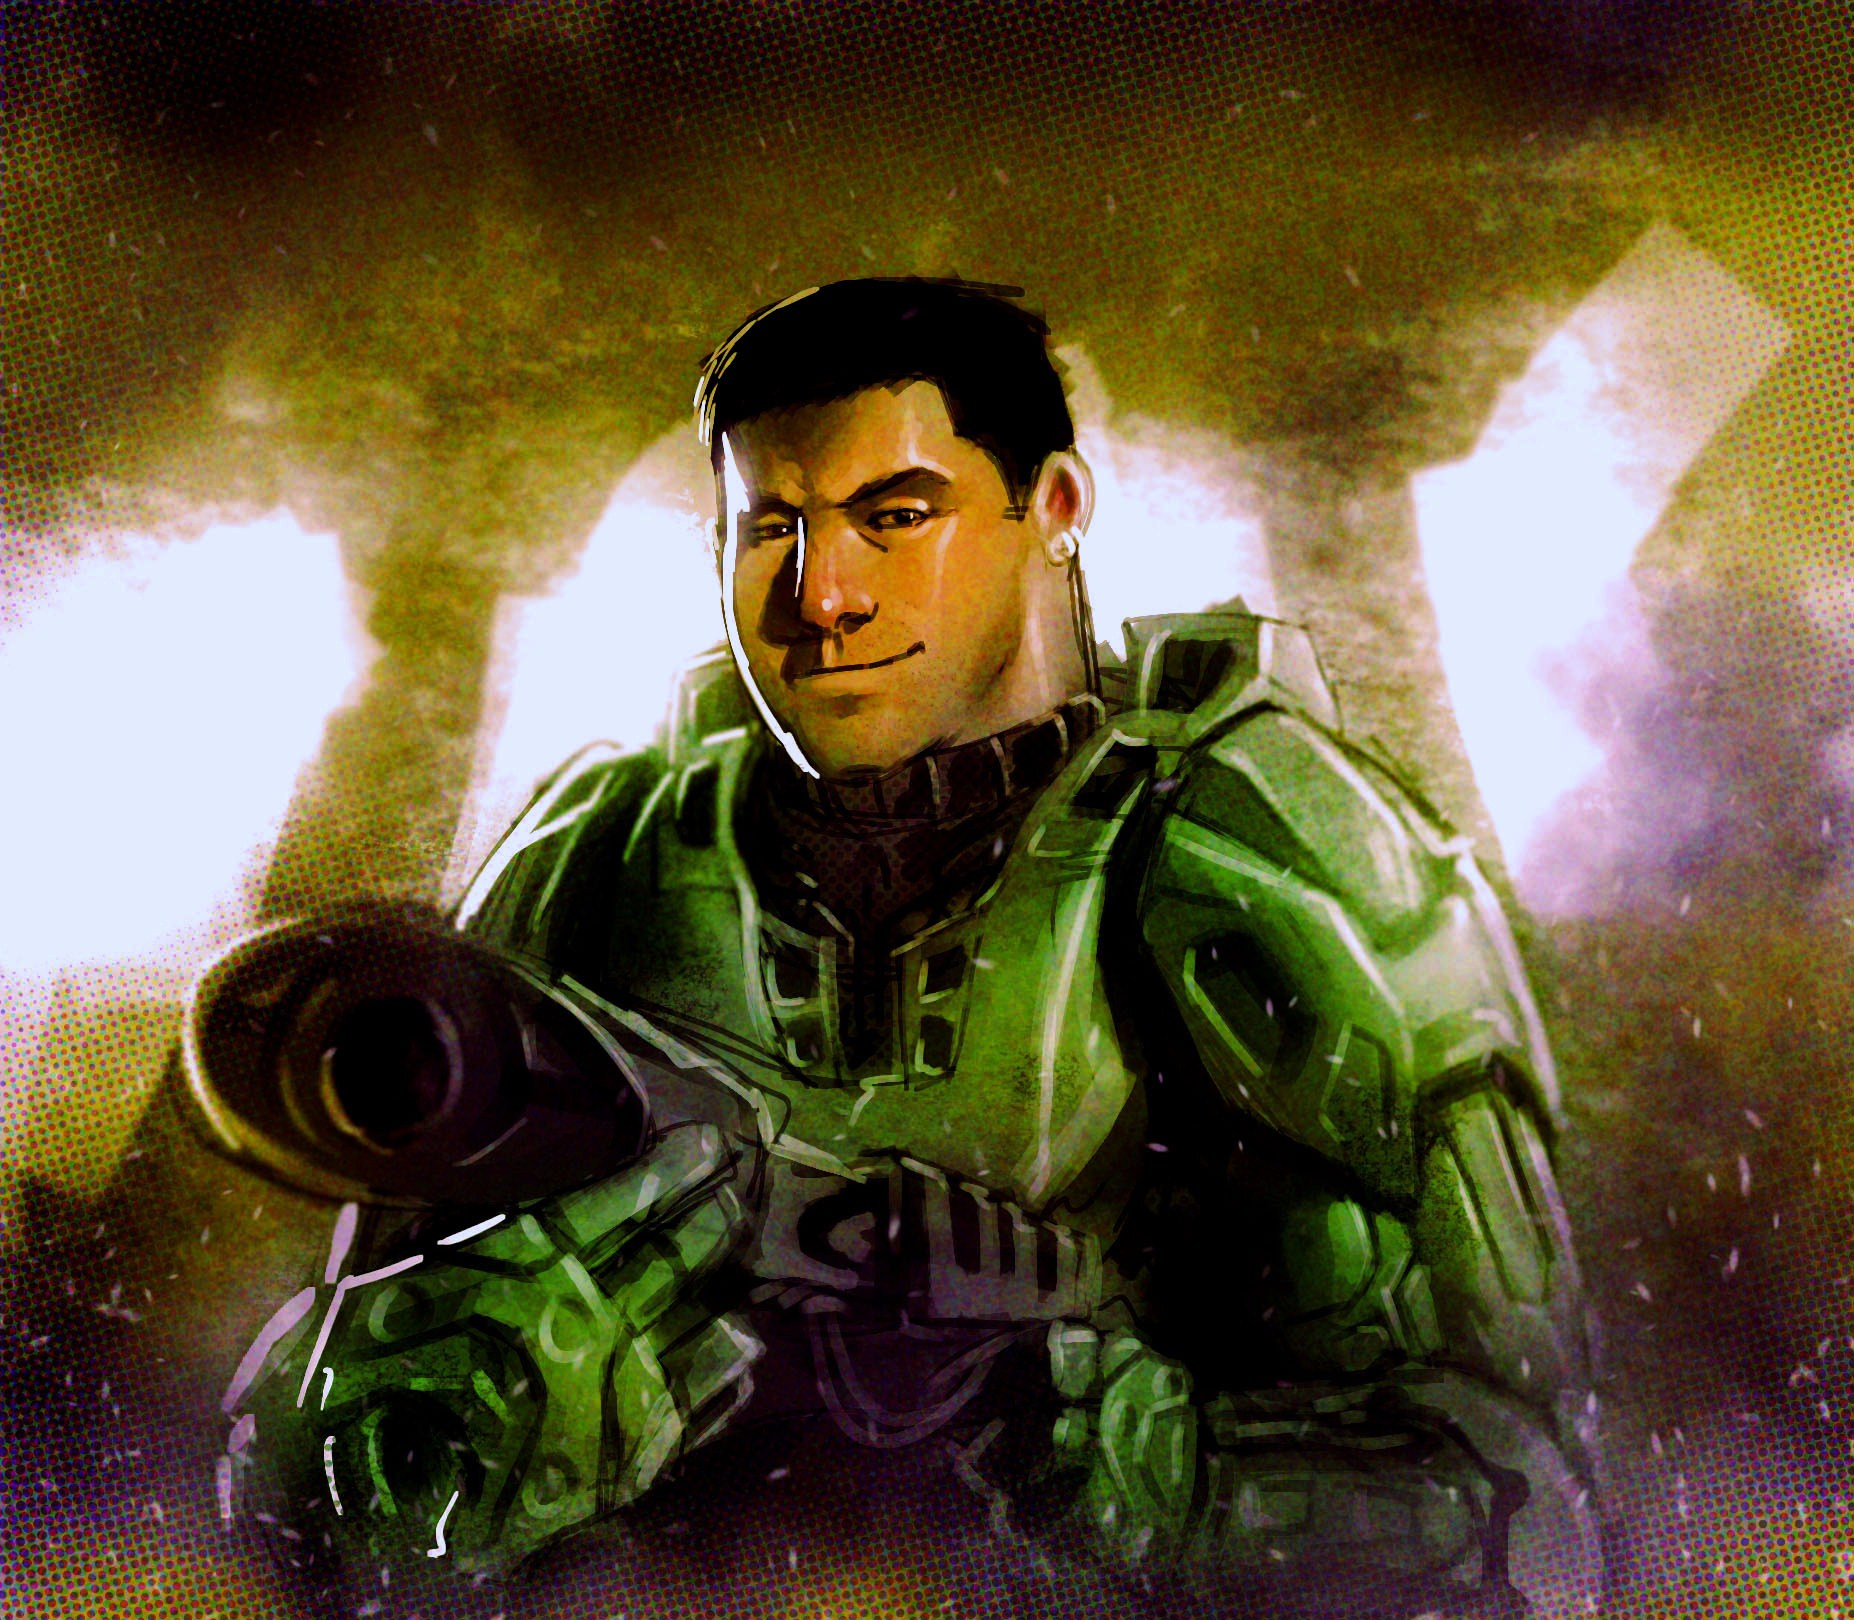 The real Master Chief